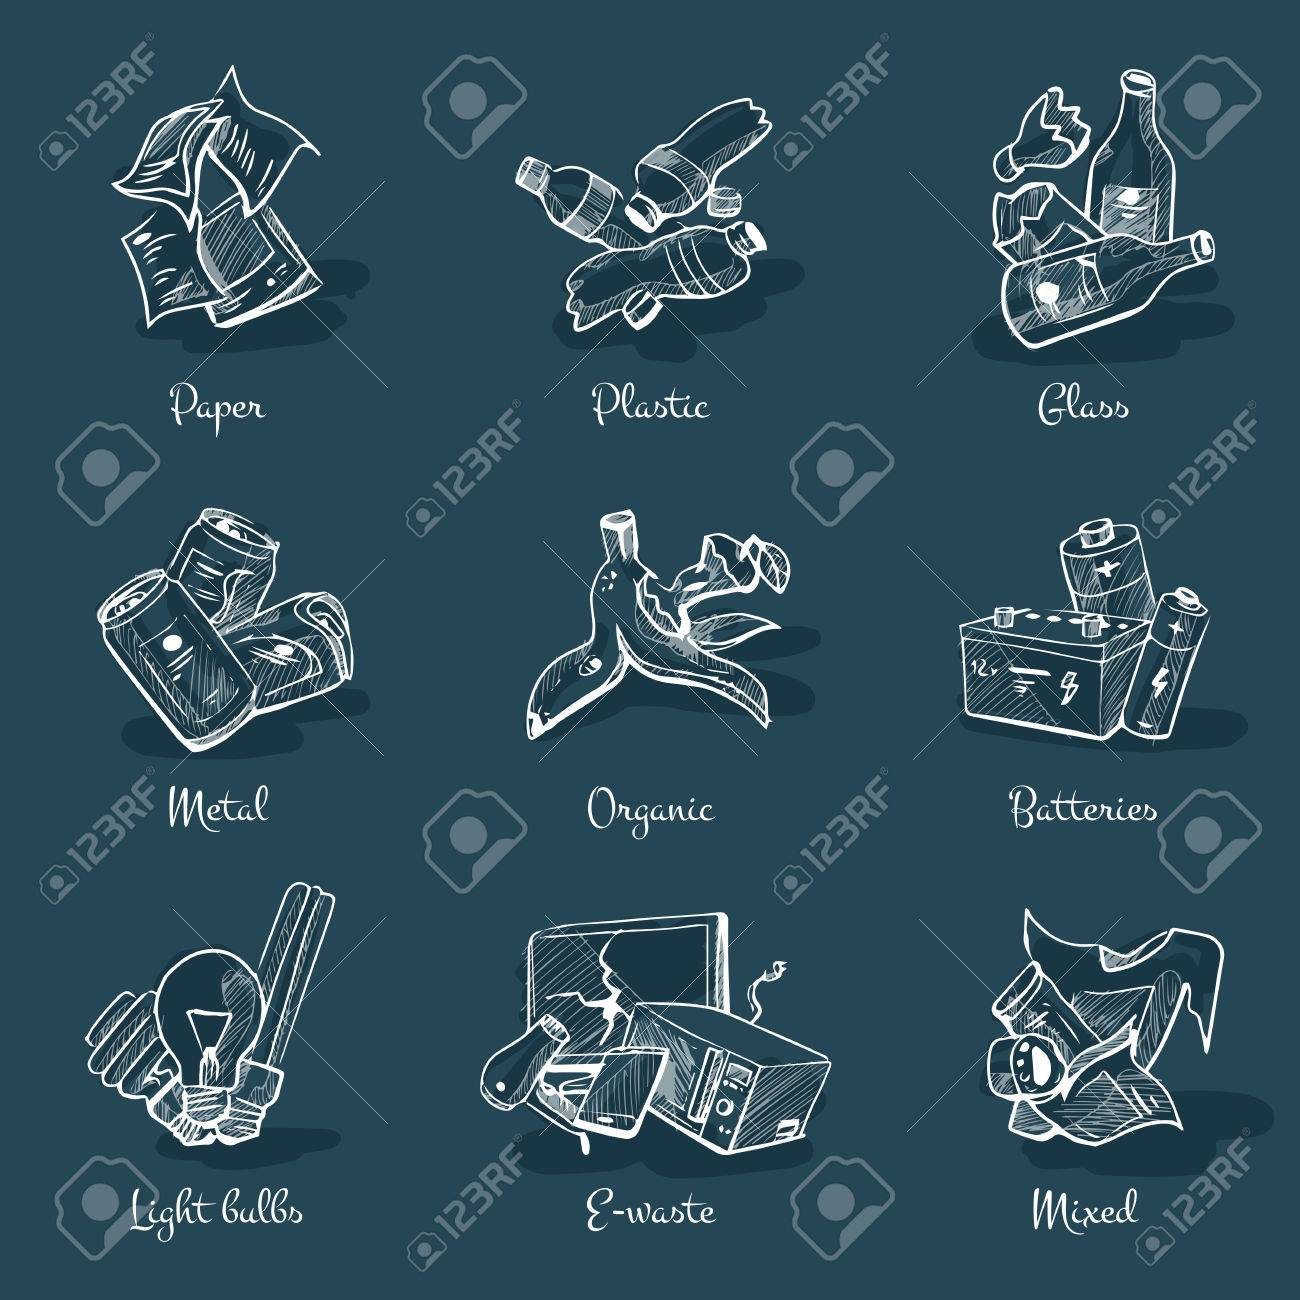 Hand drawn vector illustration on chalk board. Sketch of trash categories with organic, paper, plastic, glass, metal, e-waste, batteries, light bulbs and mixed waste. Waste types segregation recycling management concept. - 54031471